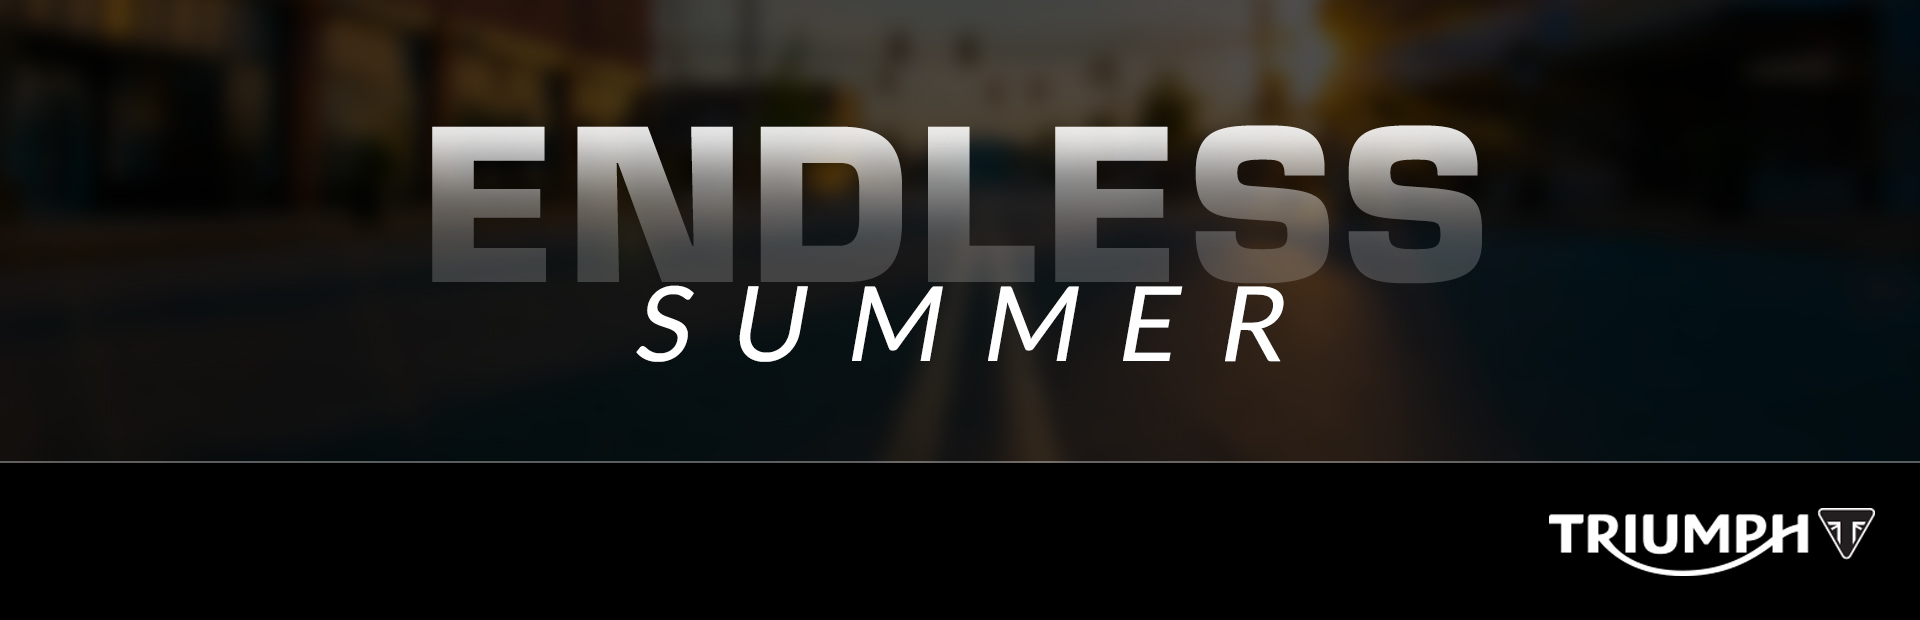 Endless Summer Promotion